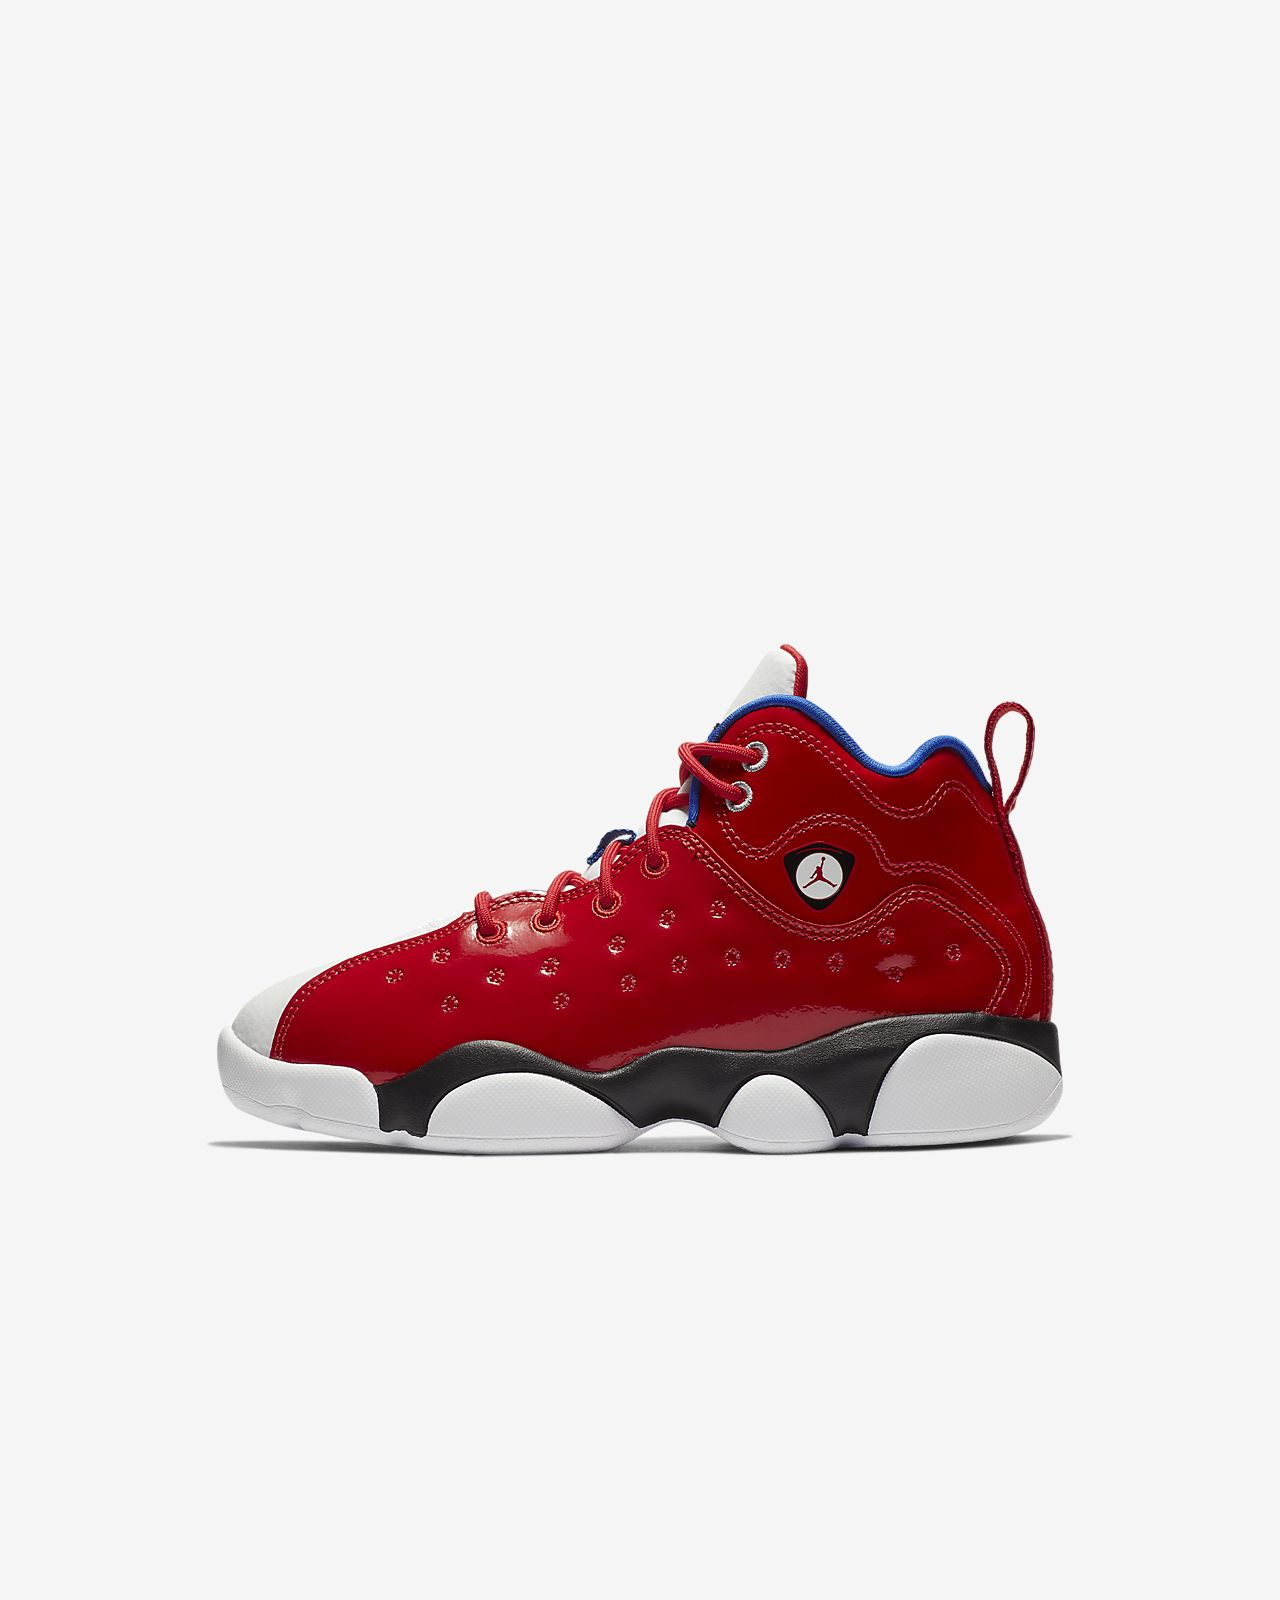 0f2ed1fe31 Jordan Jumpman Team II Little Kids  Shoe. Nike.com